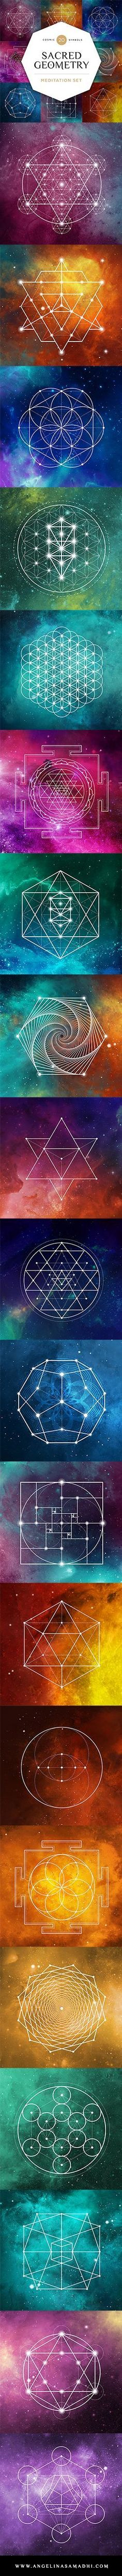 57 Best SACRED GEOMETRY images in 2019 | Sacred geometry